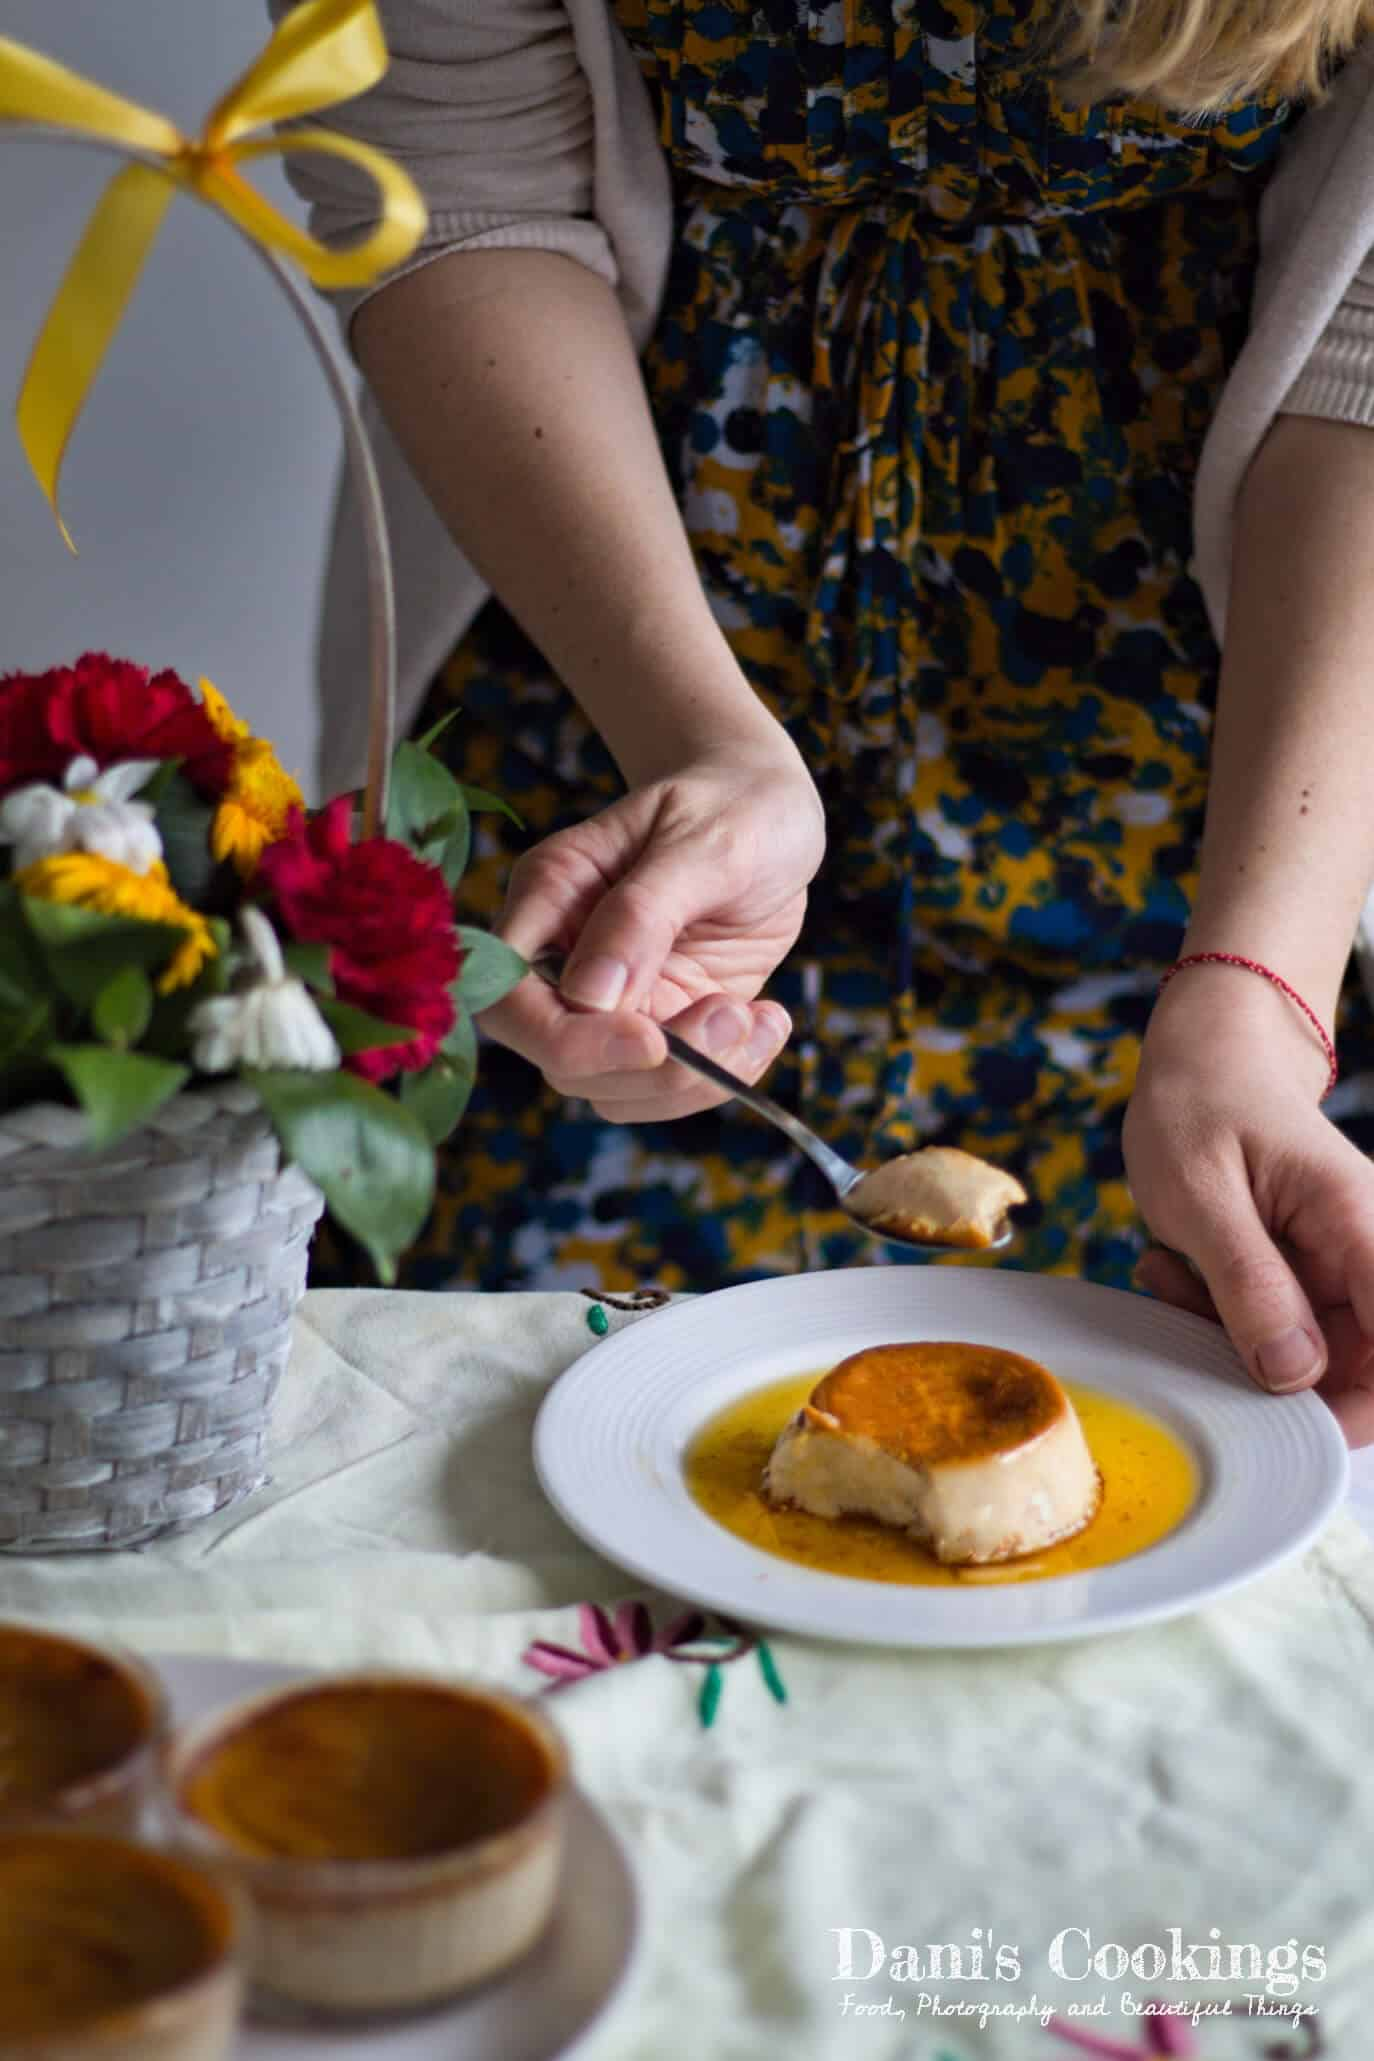 a woman eating creme caramel from a plate